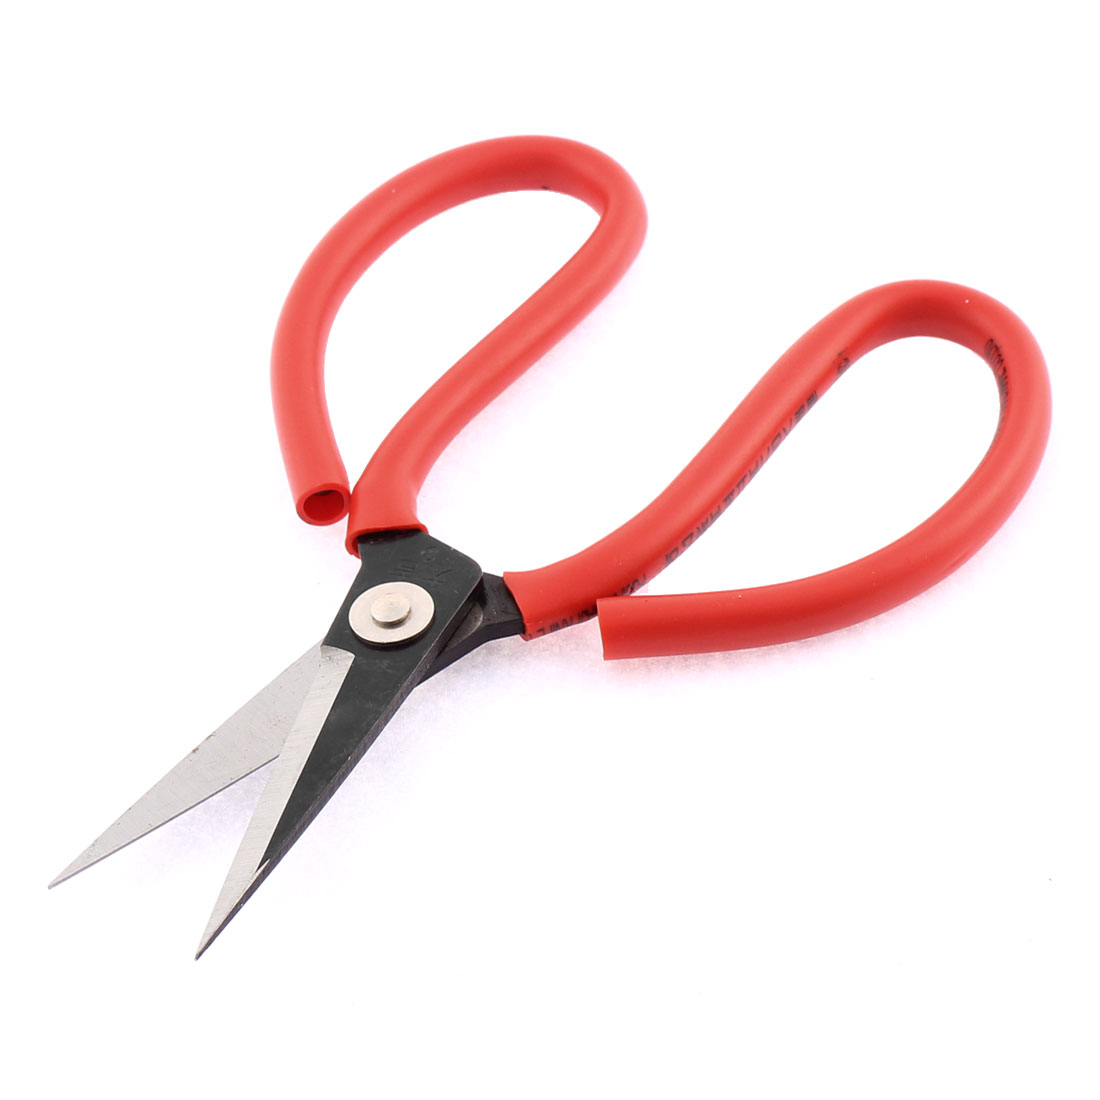 Unique Bargains Home Red Rubber Coated Handle Metal Cutter Scissors 6.5 Inches Long